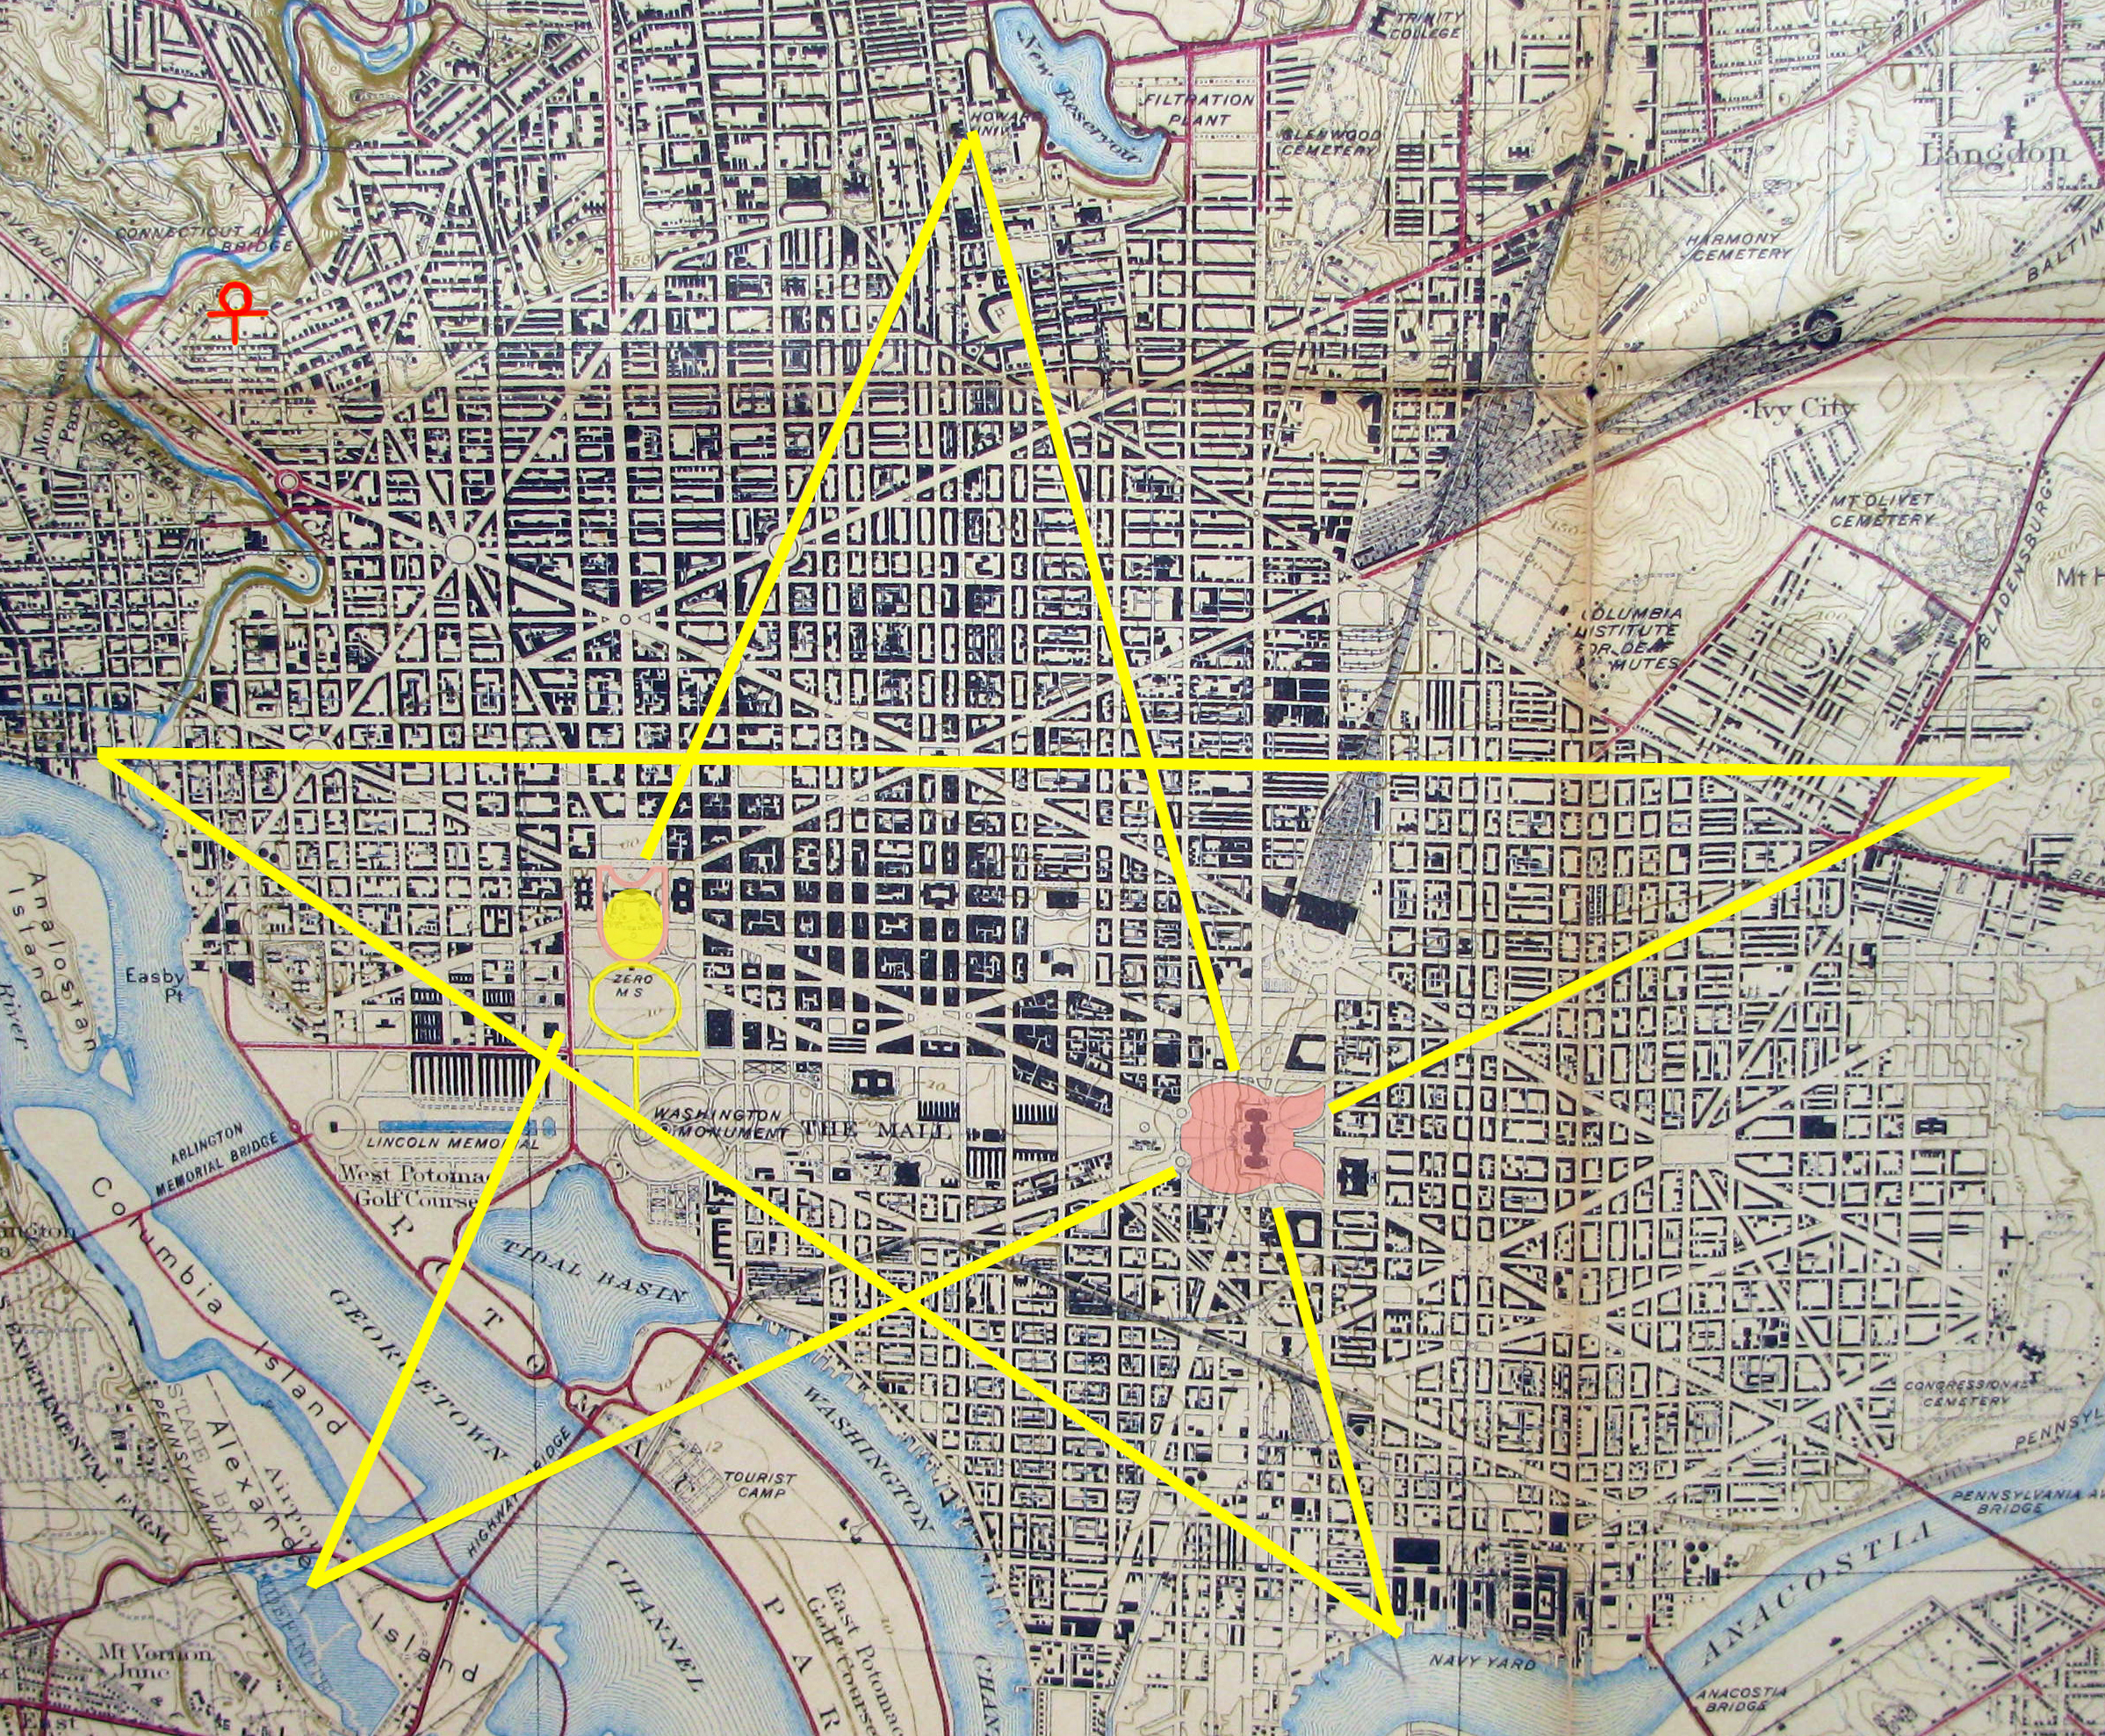 Freemasons History In America Symbols Structures And Influence - Washington dc map symbol